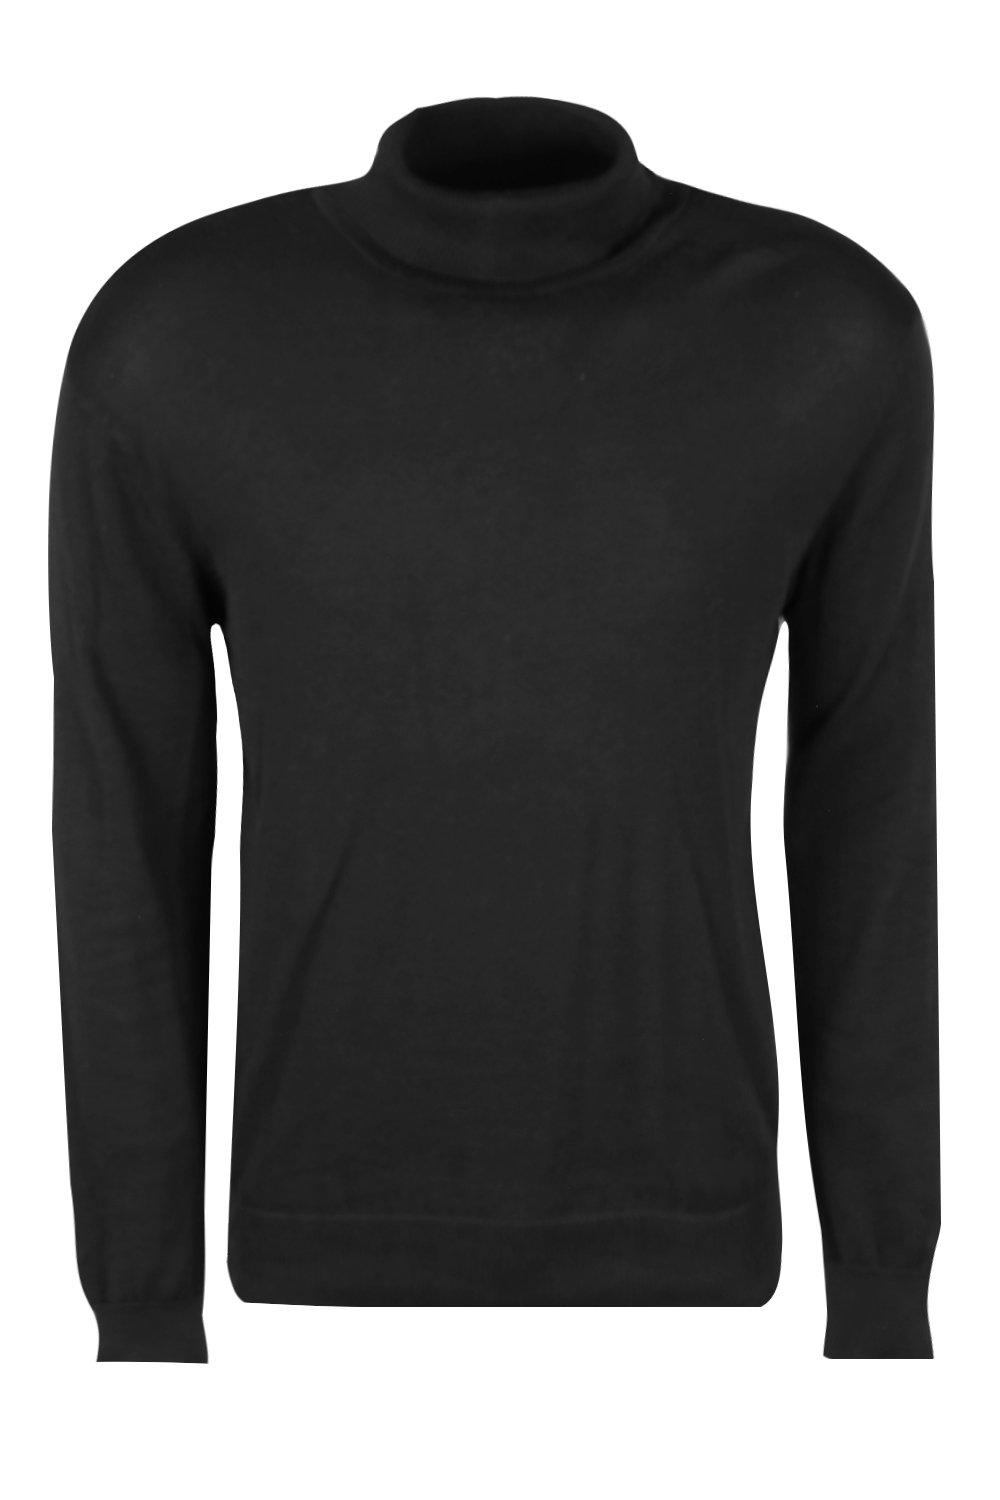 boohooMAN black Long Sleeve Knitted Roll Neck Jumper